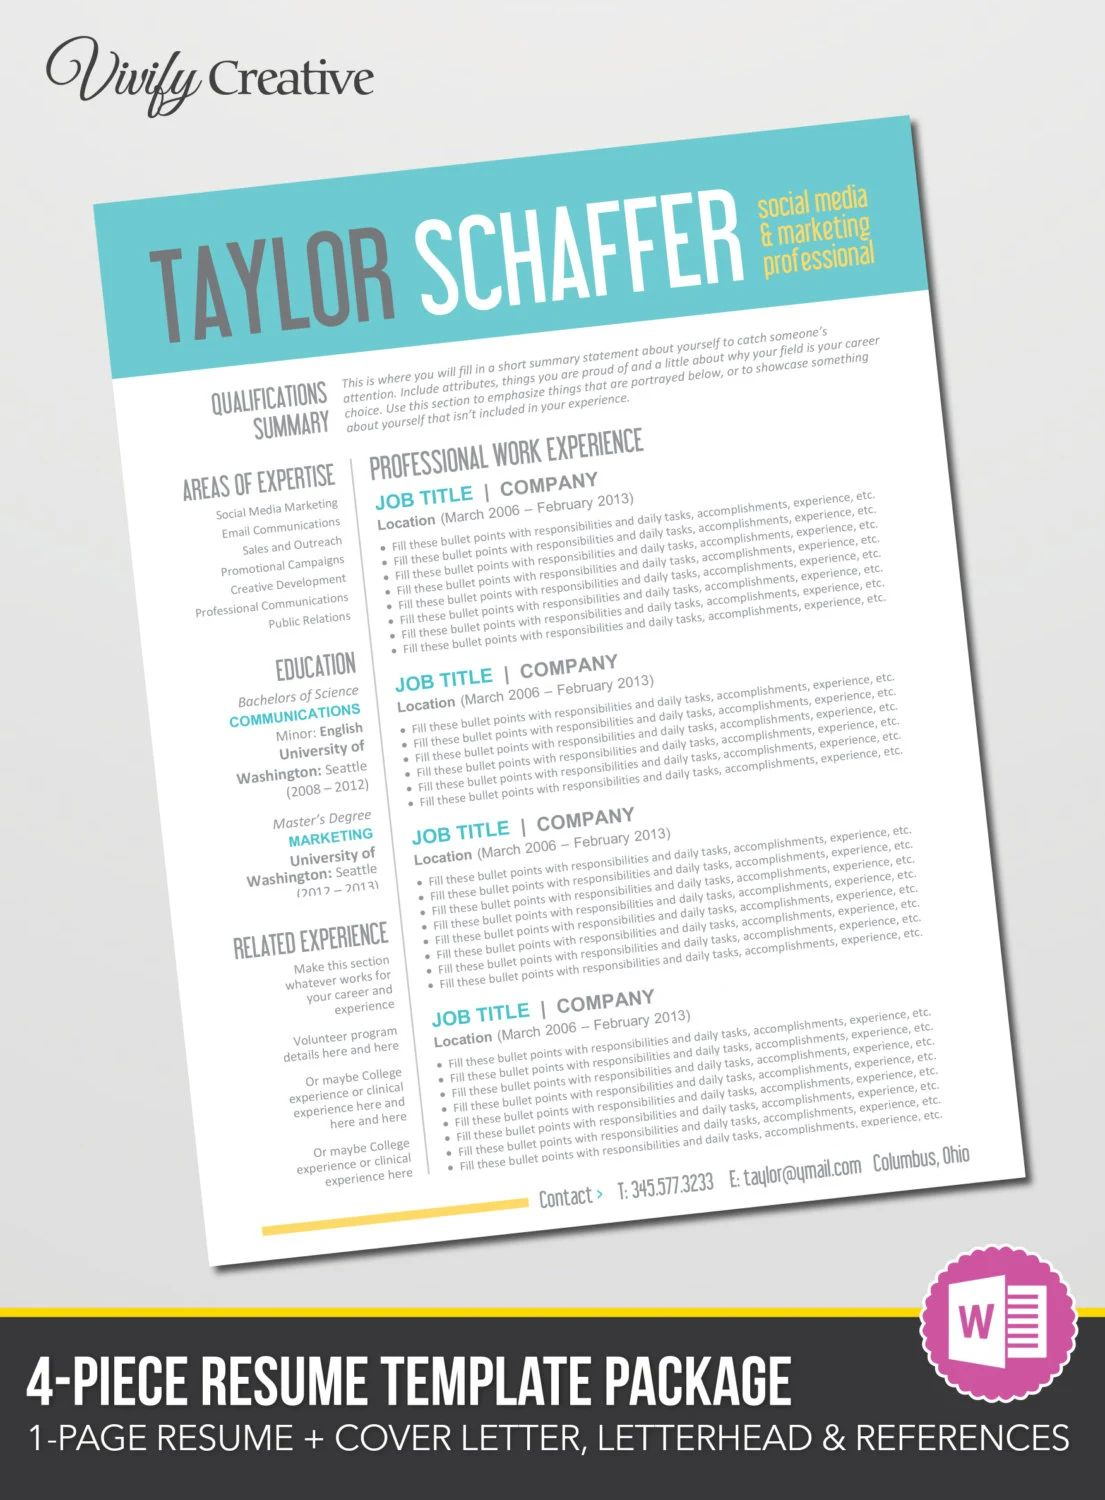 create a cover letter for a resume